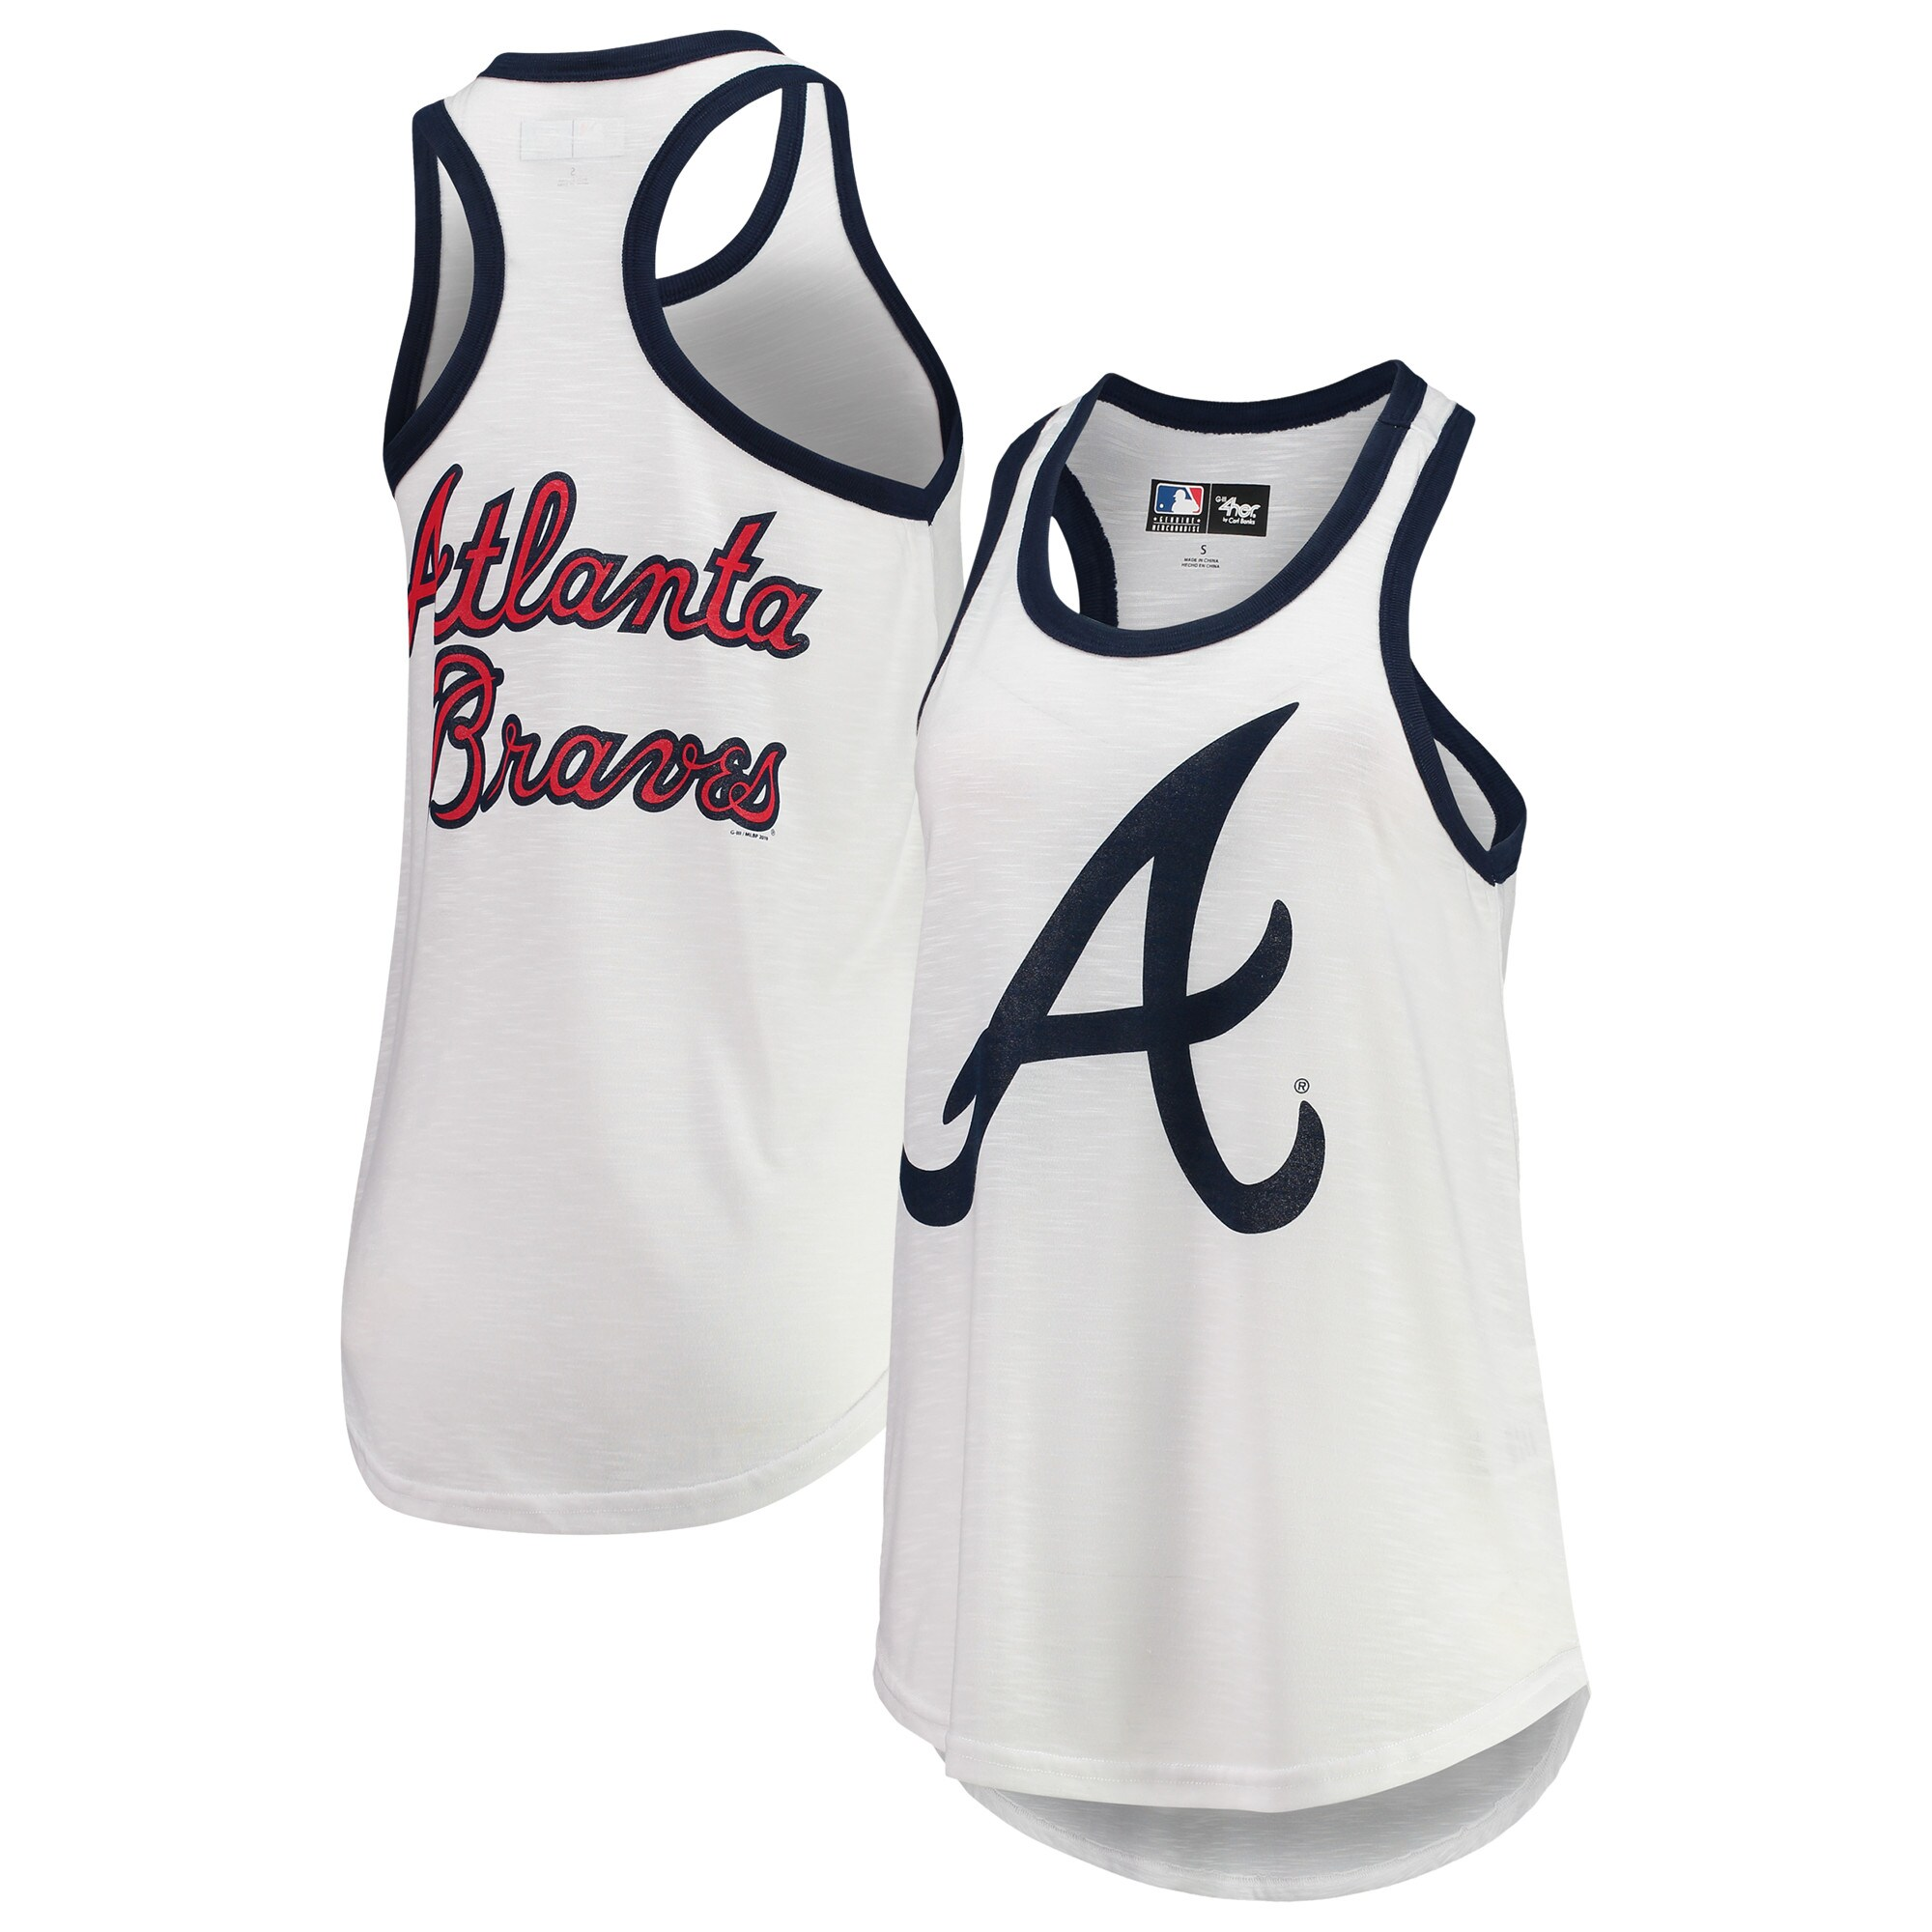 Atlanta Braves G-III 4Her by Carl Banks Women's Tater Racerback Tank Top - White